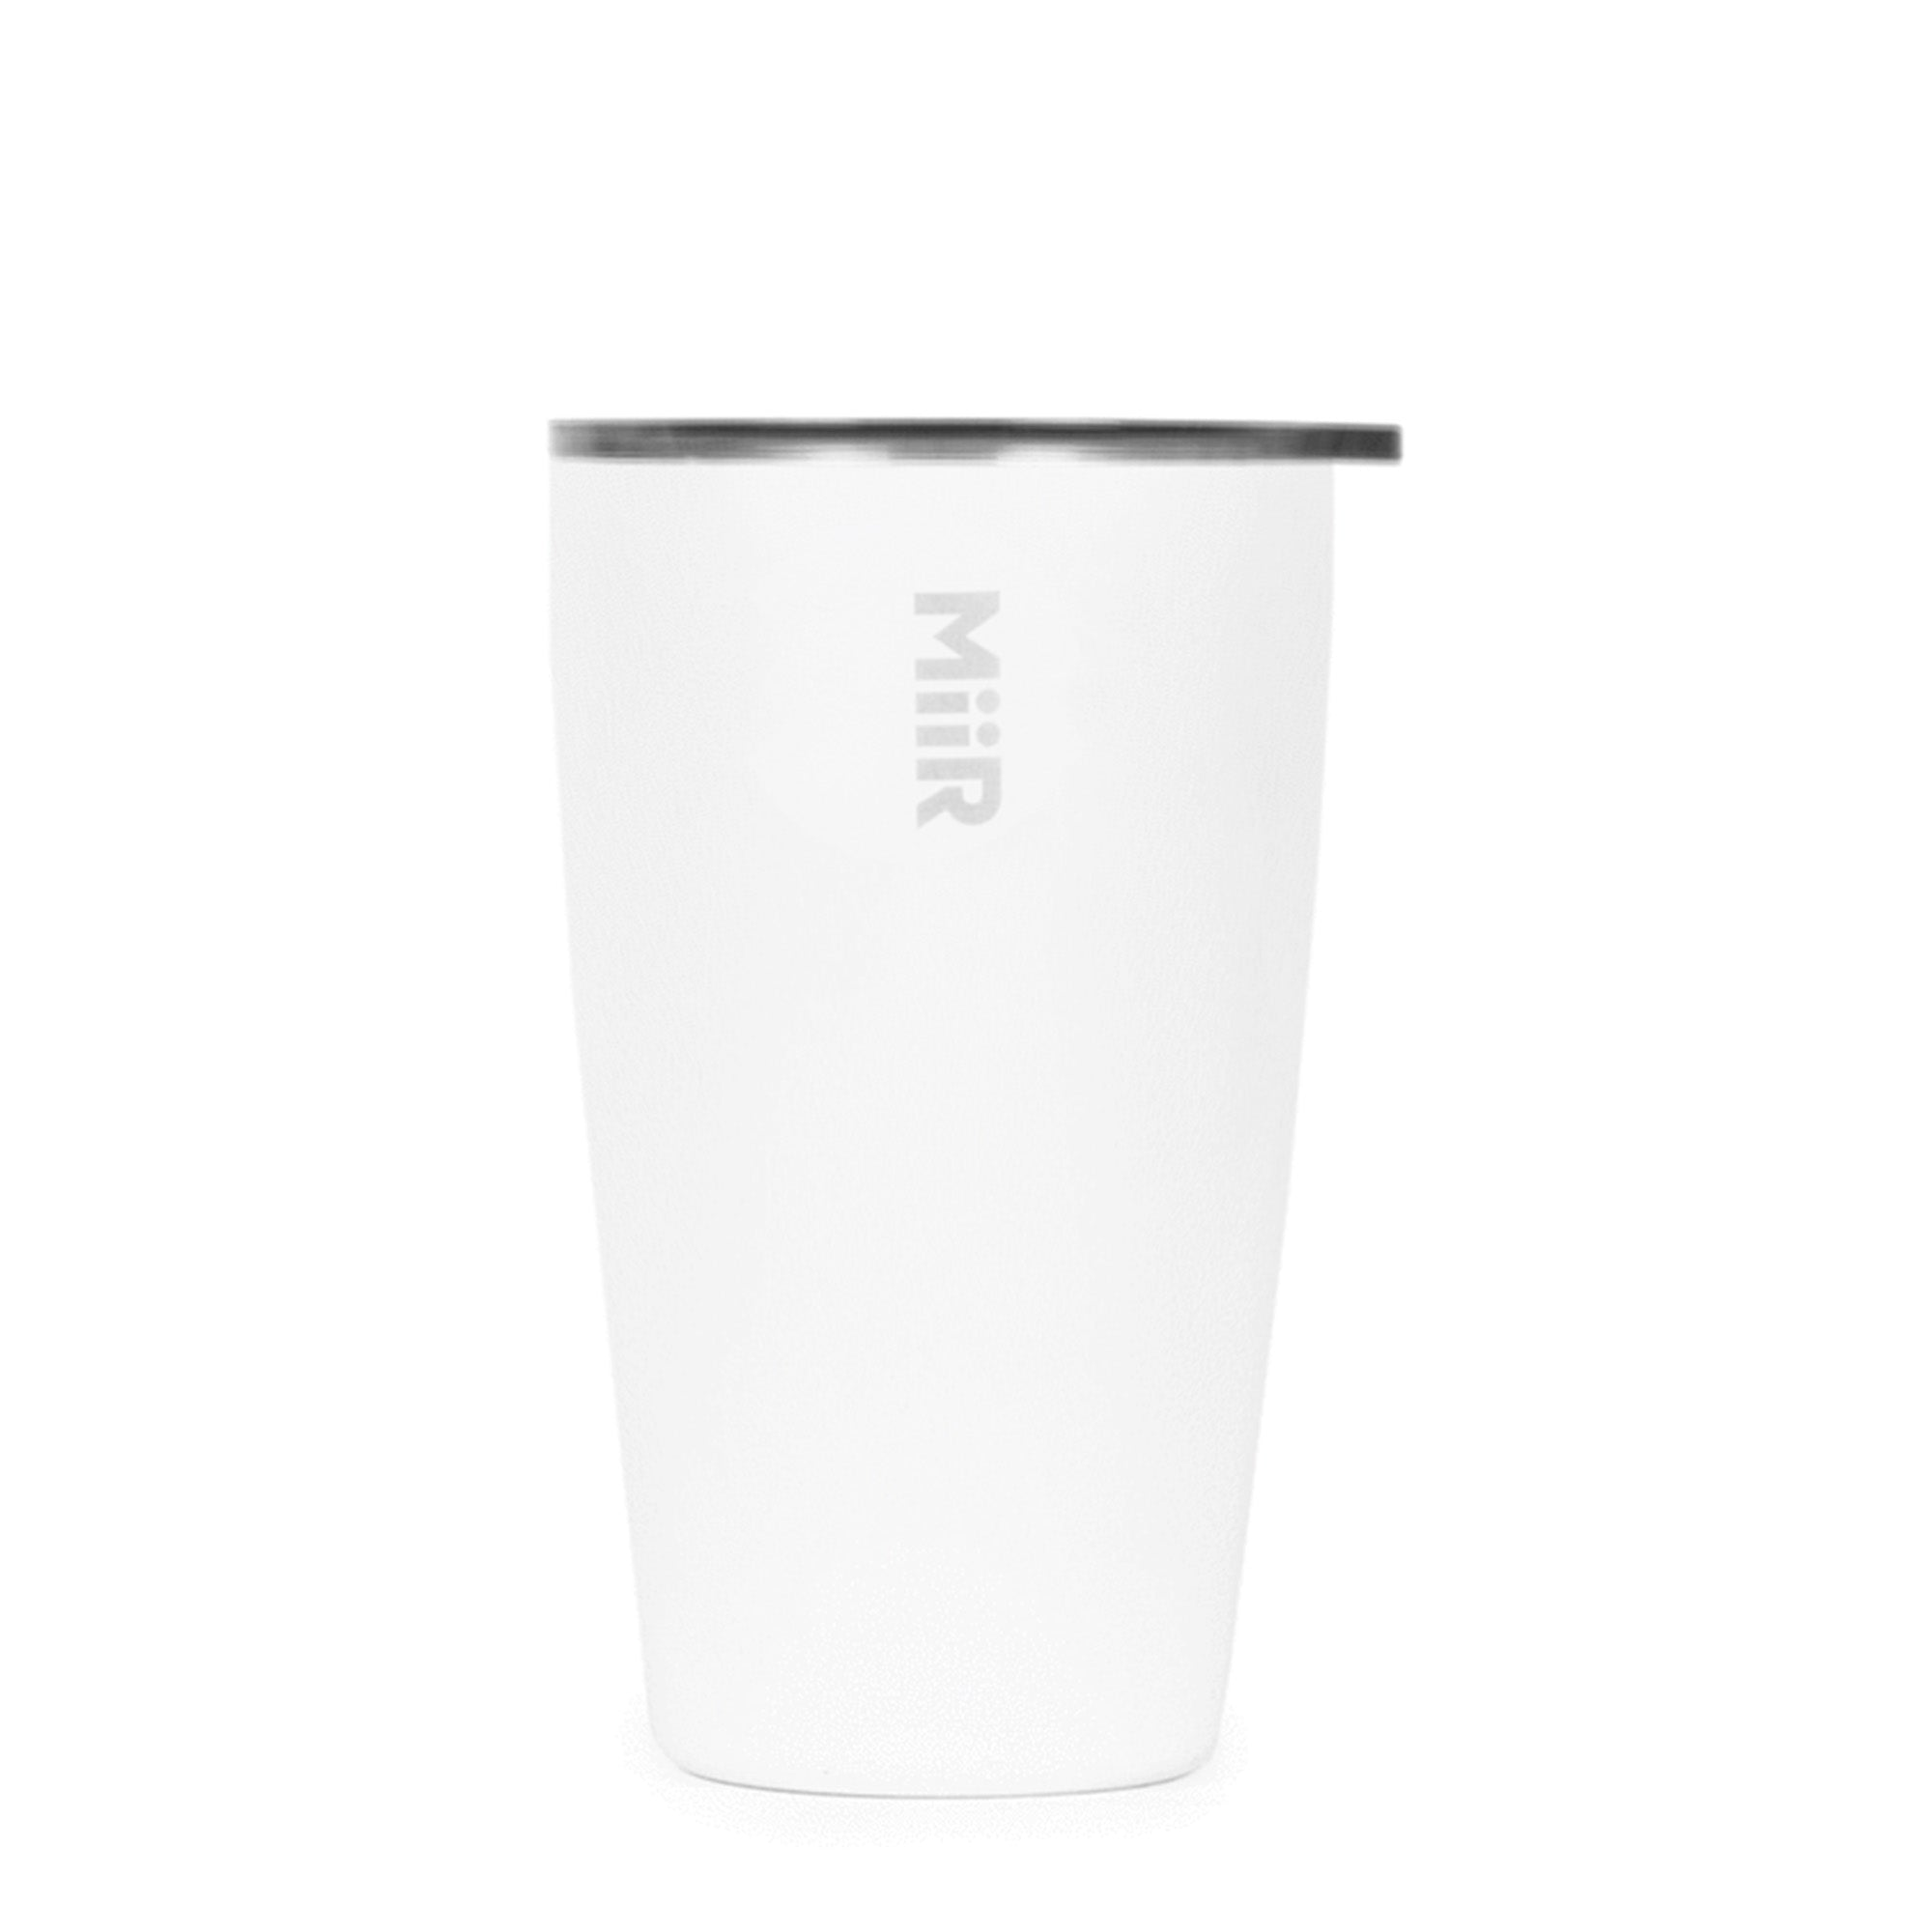 MiiR Cafe Femenino Coffee Tumbler